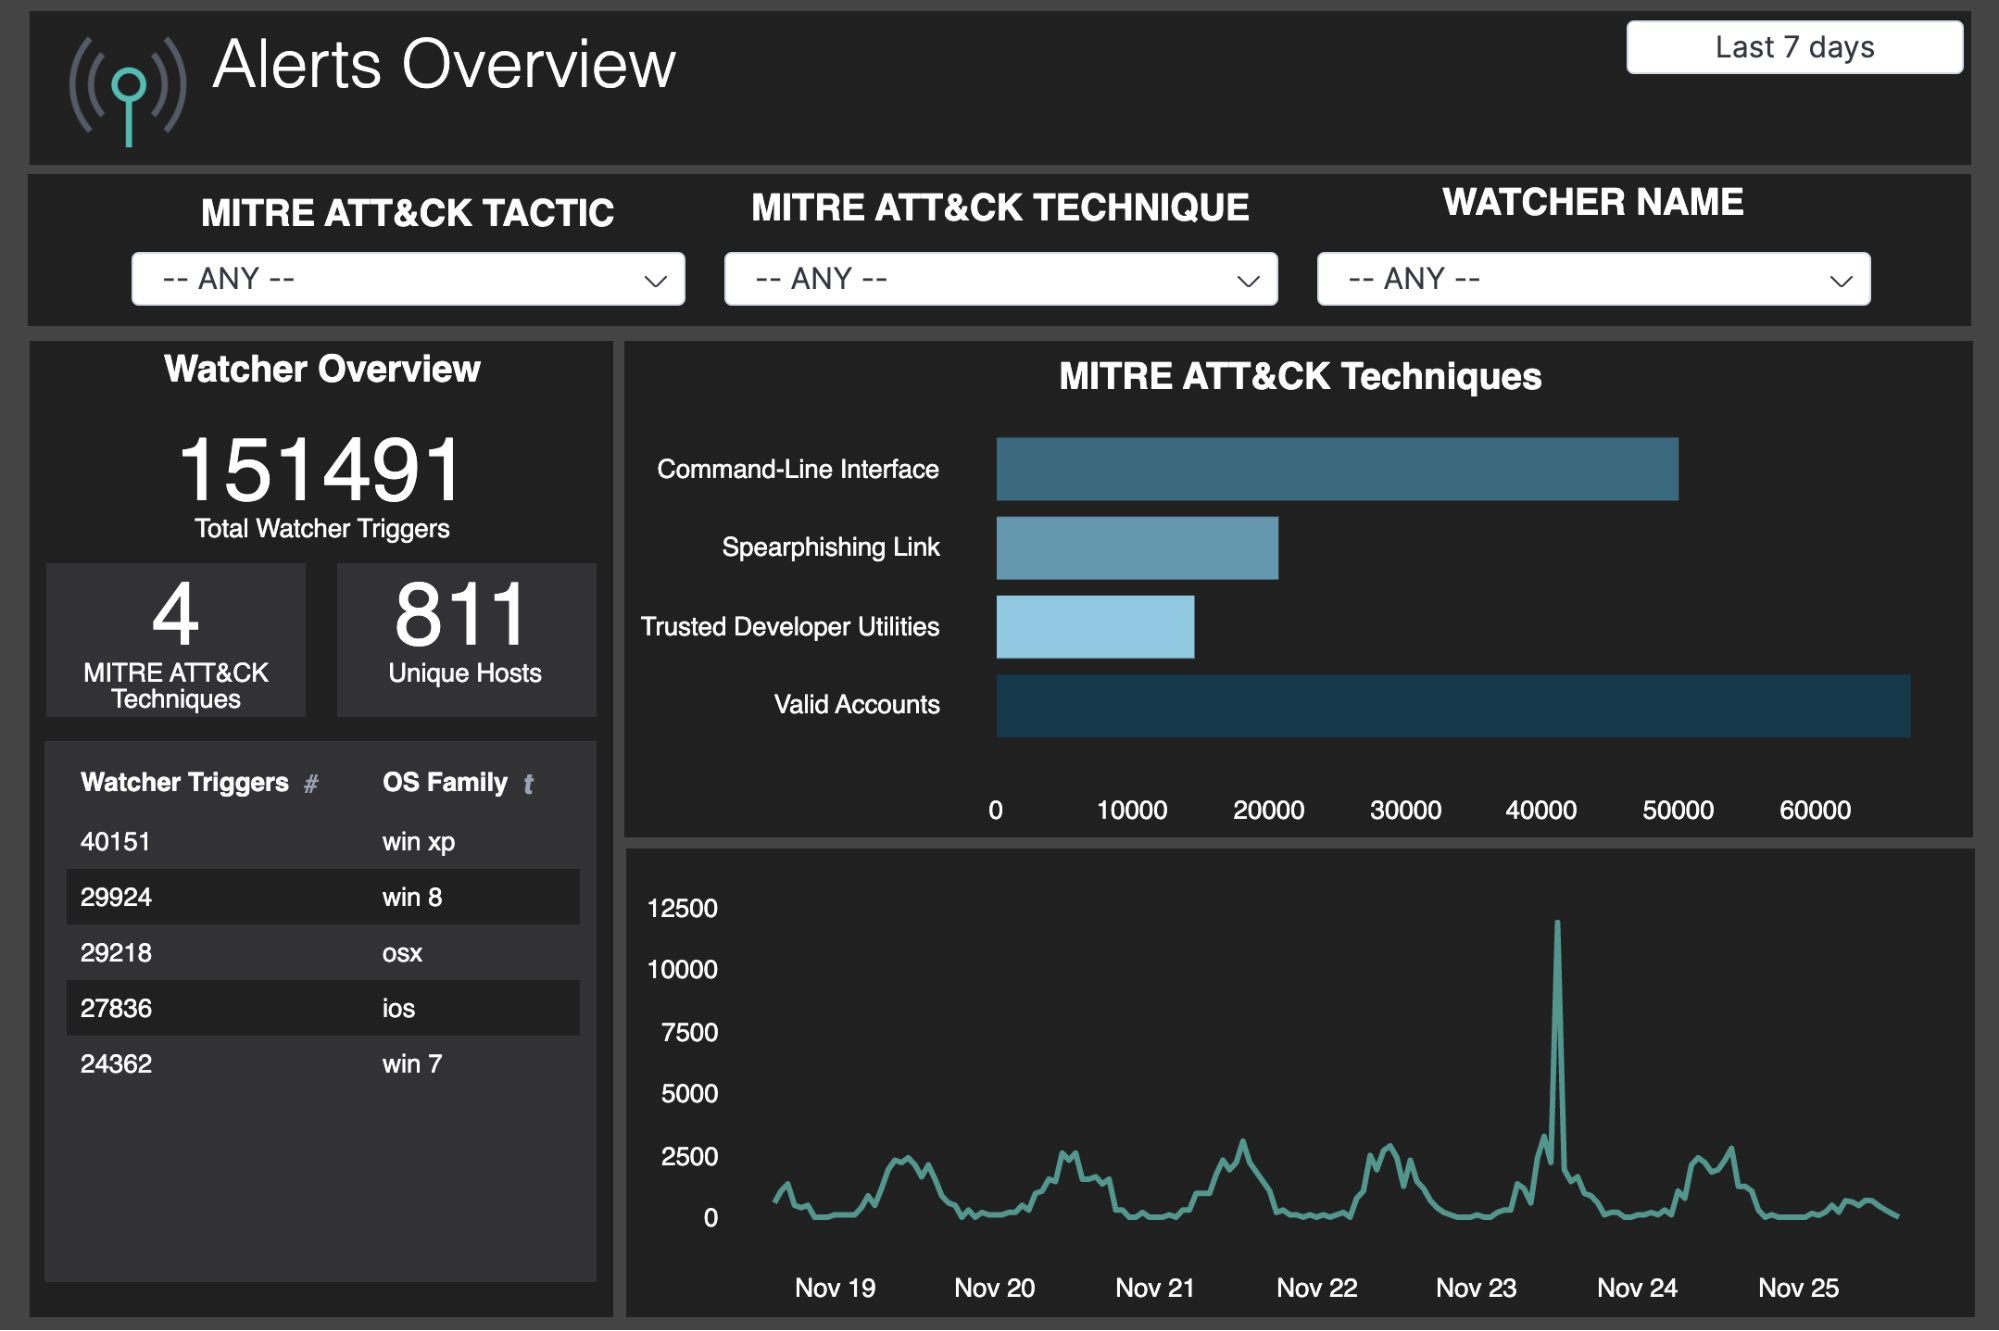 Canvas dashboard showing security alerts overview